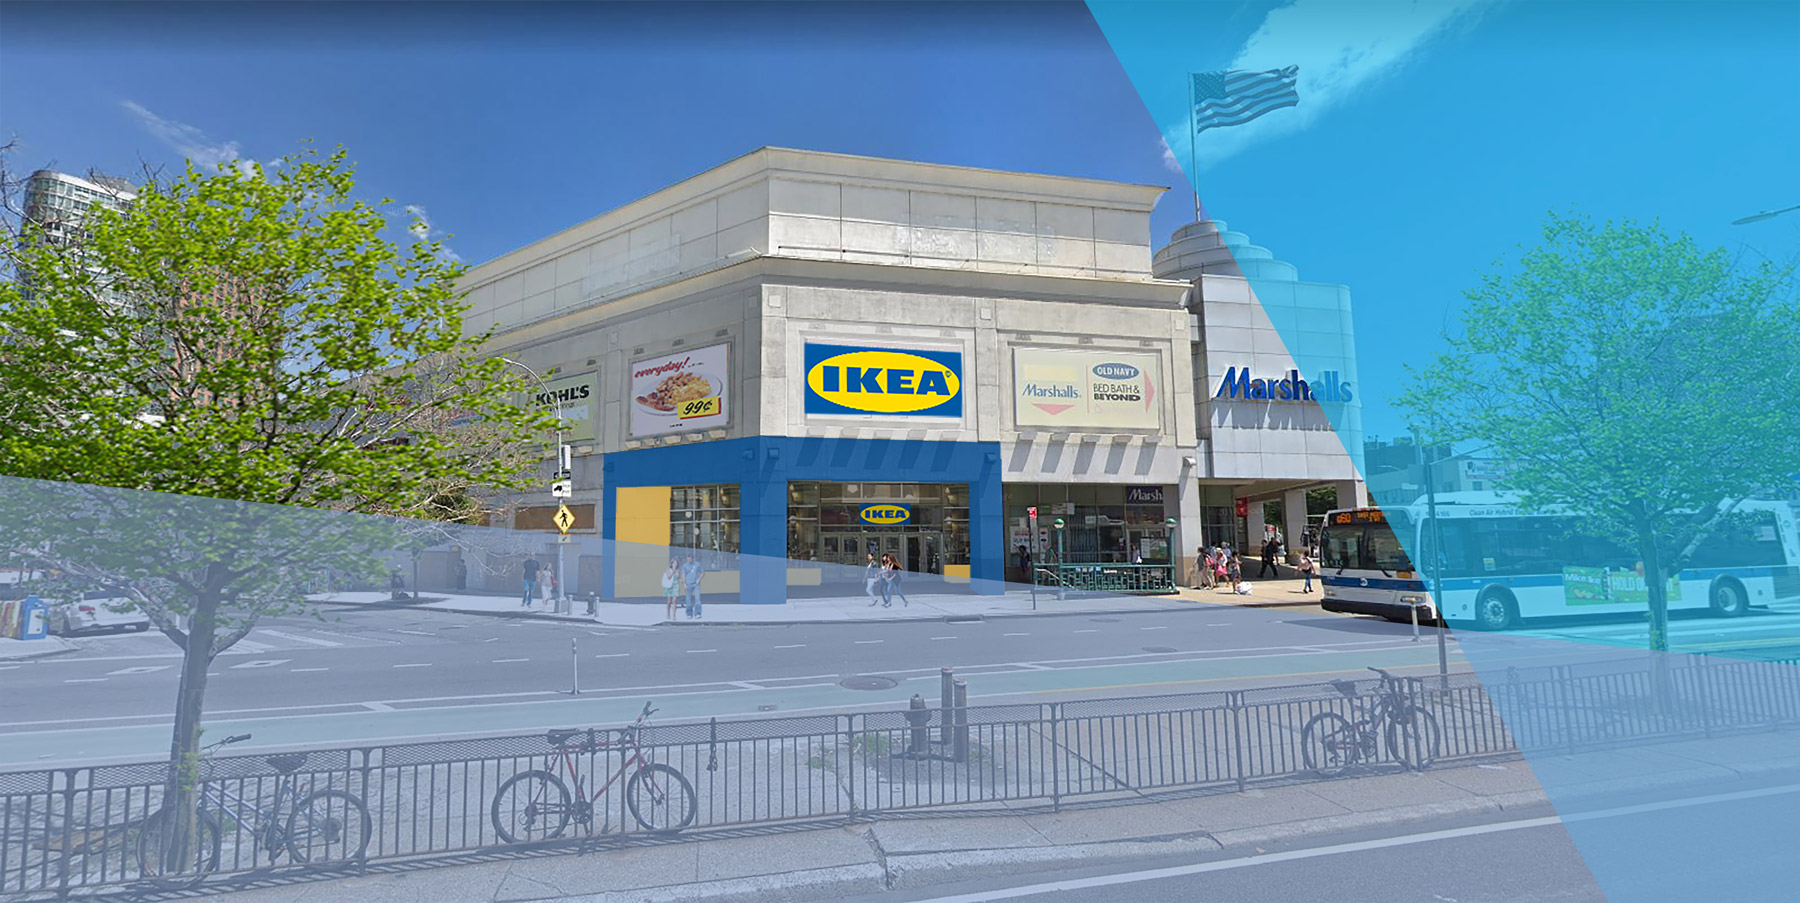 New IKEA store layout - Queens, New York, store announcement